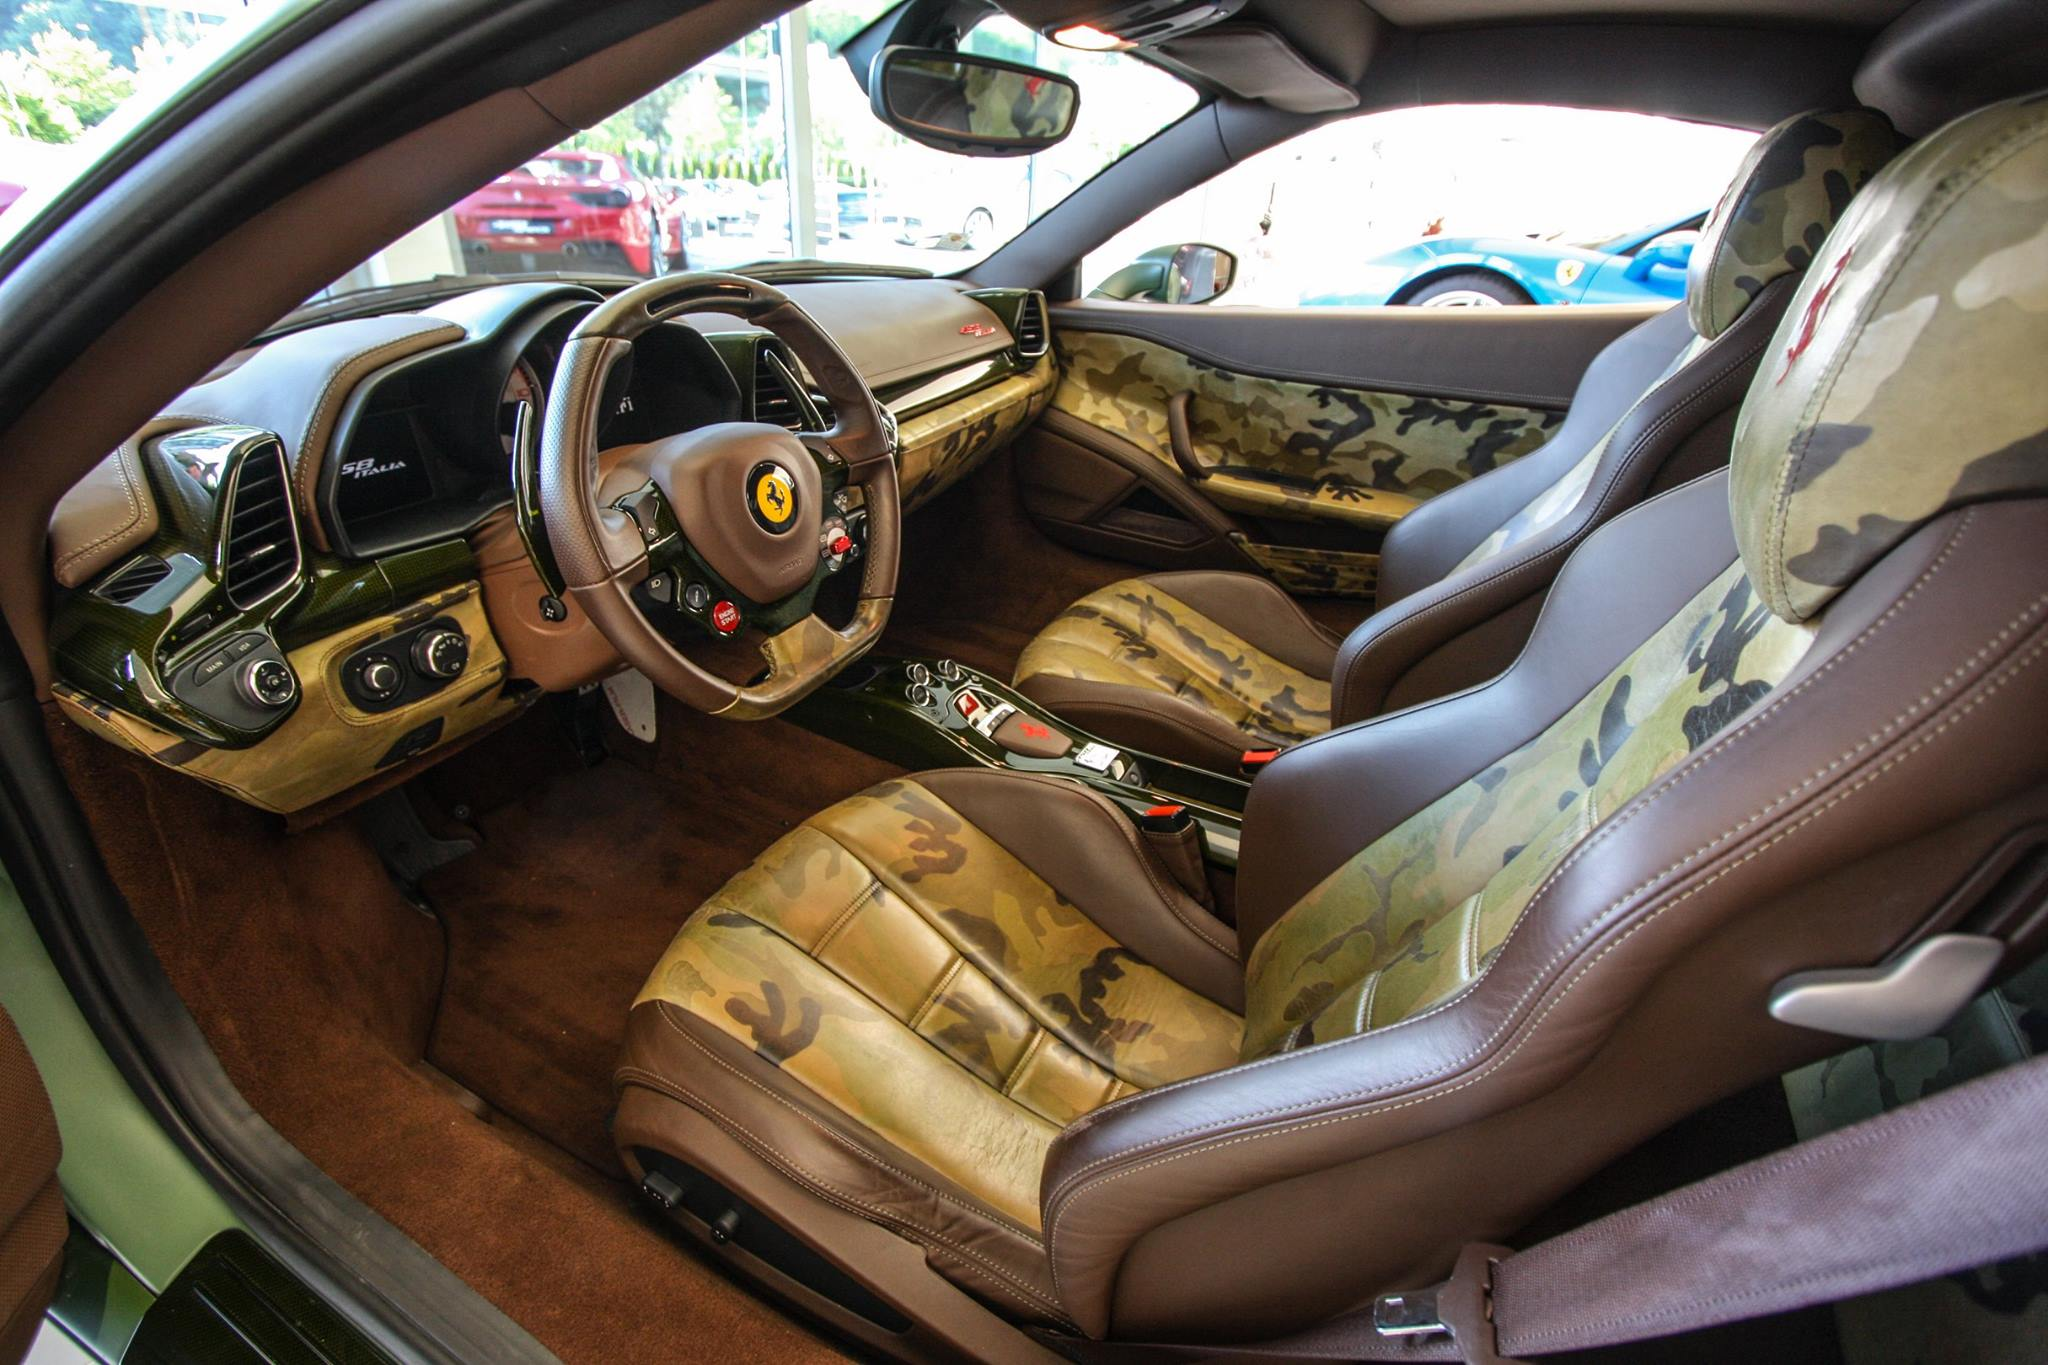 Ferrari 458 Italia For Sale >> Camo Ferrari 458 Italia Sells for $1.1 Million at AIDS Auction - GTspirit